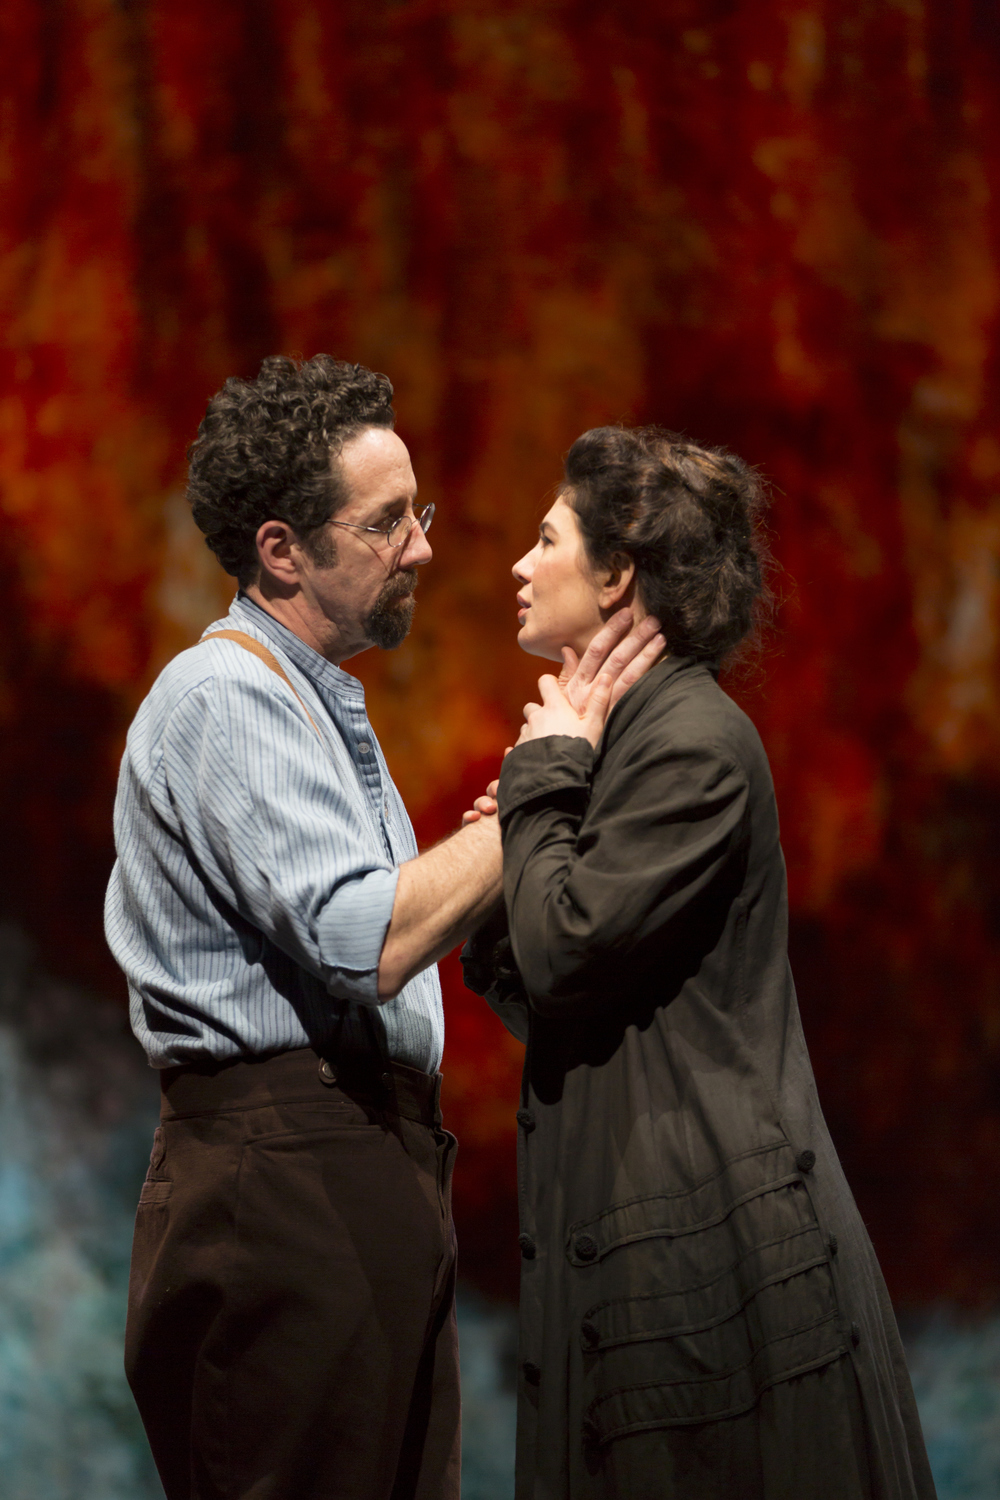 Christopher Tarjan and Christina Pumariega in the Huntington Theatre Company's production of Melinda Lopez's BECOMING CUBA.  March 28 - May 3, 2014 at South End / Calderwood Pavilion at the BCA. huntingtontheatre.org. Photo T. Charles Erickson